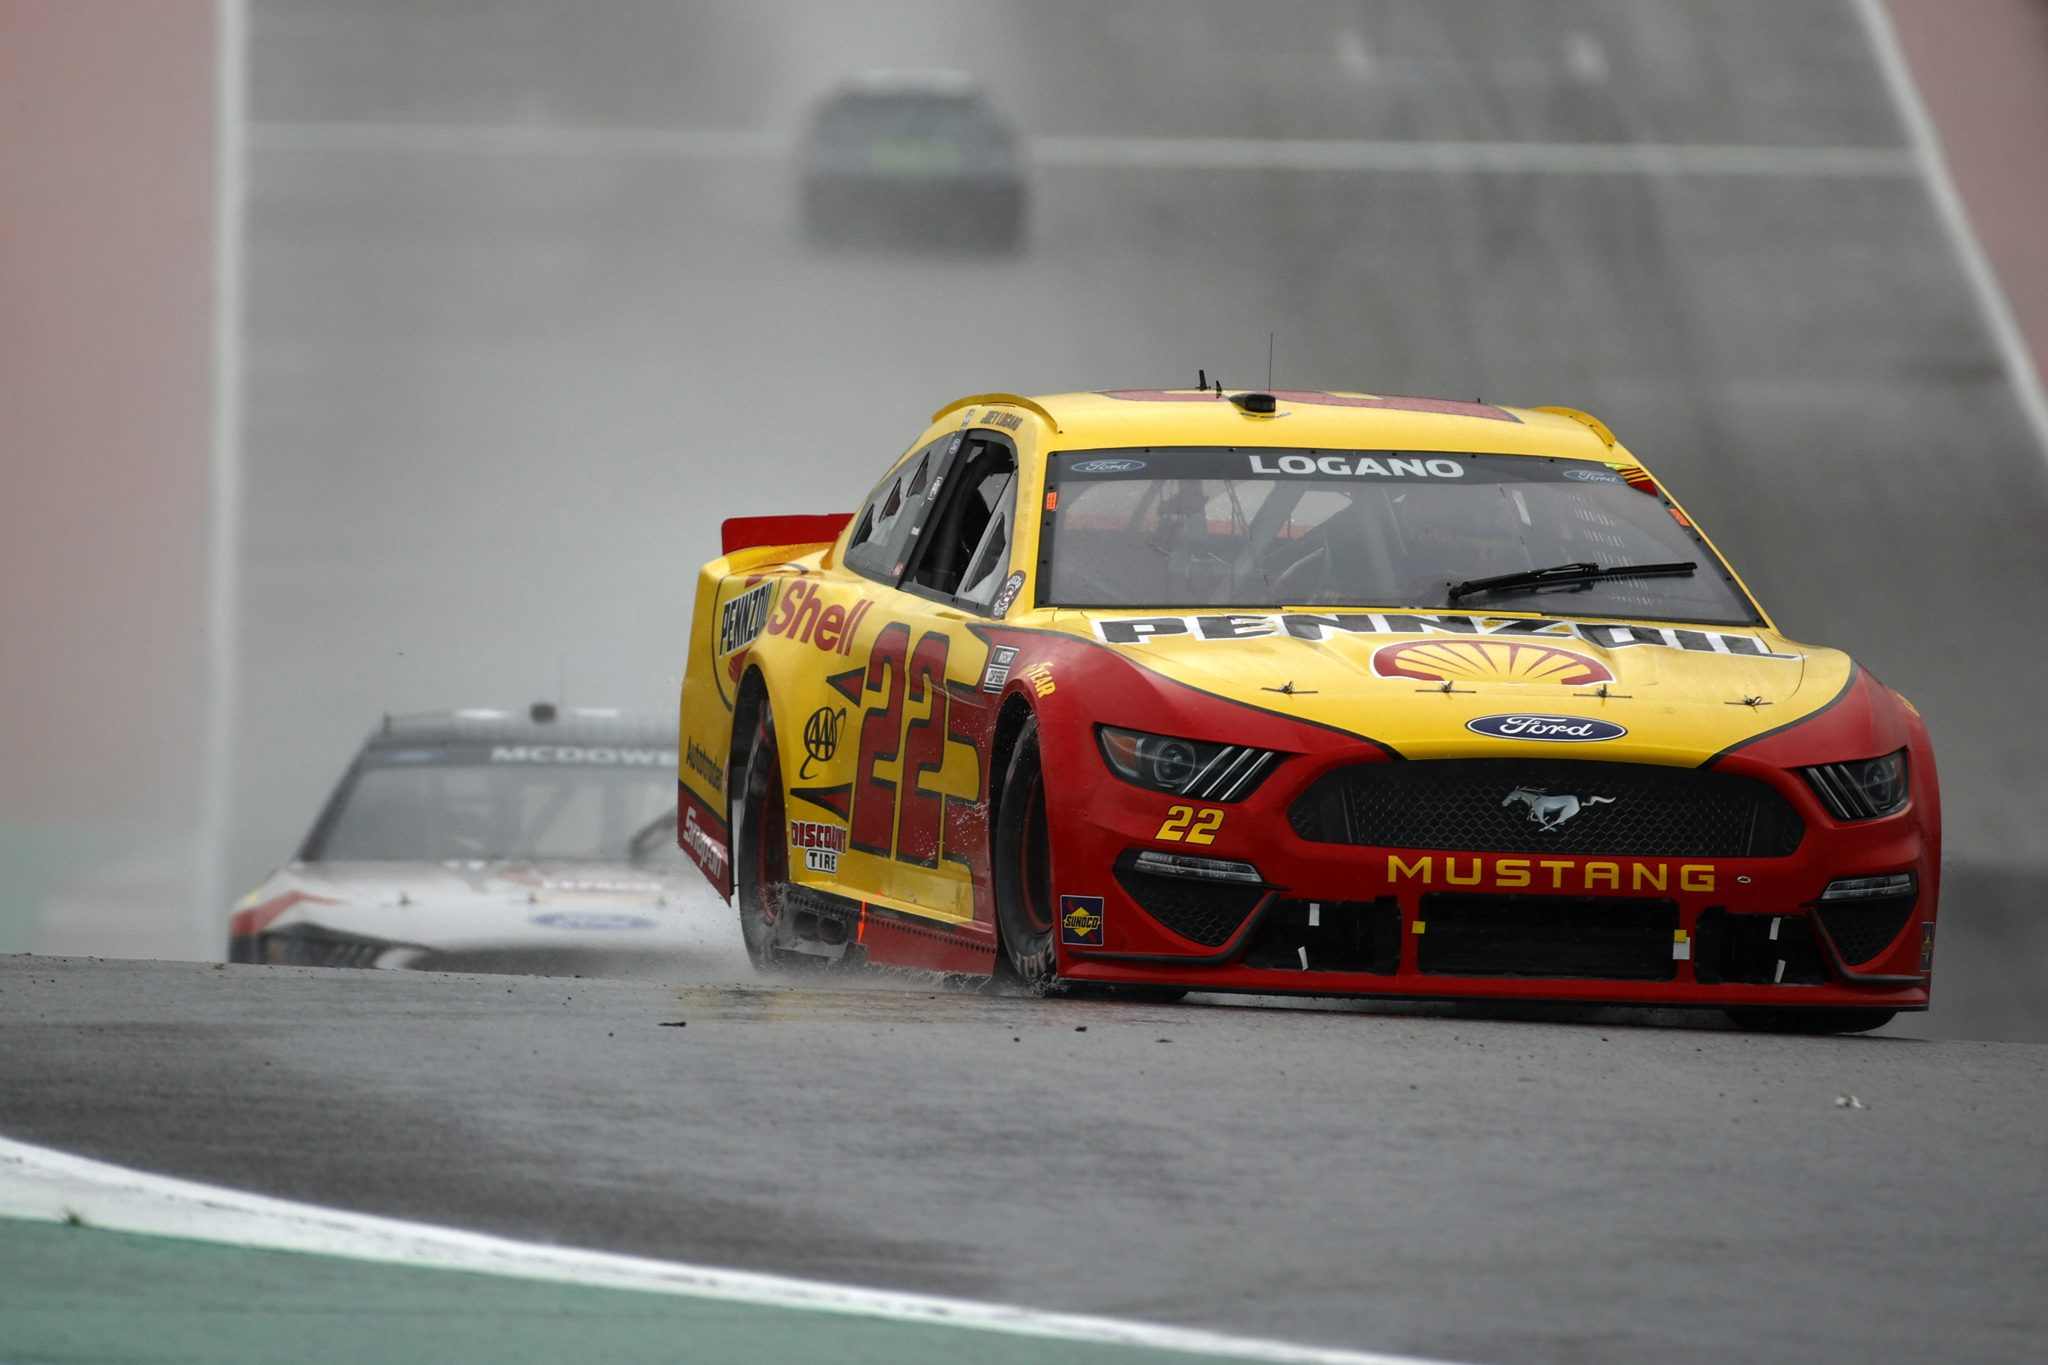 AUSTIN, TEXAS - MAY 23: Joey Logano, driver of the #22 Shell Pennzoil Ford, drives during the NASCAR Cup Series EchoPark Texas Grand Prix at Circuit of The Americas on May 23, 2021 in Austin, Texas. (Photo by Jared C. Tilton/Getty Images) | Getty Images